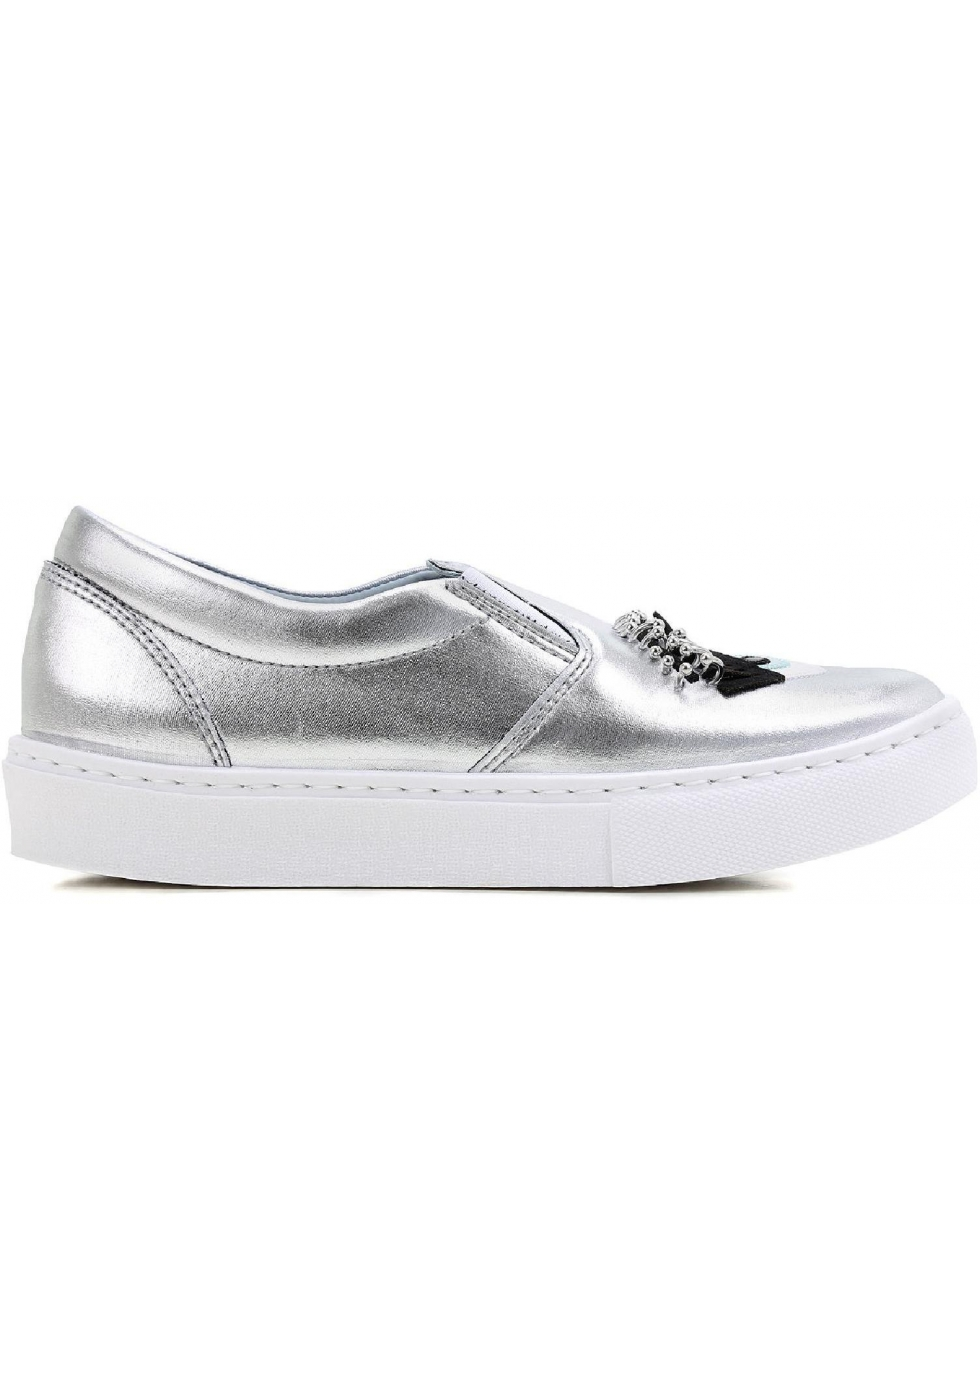 ... Chiara Ferragni silver metallic Leather slip-ons sneakers ...